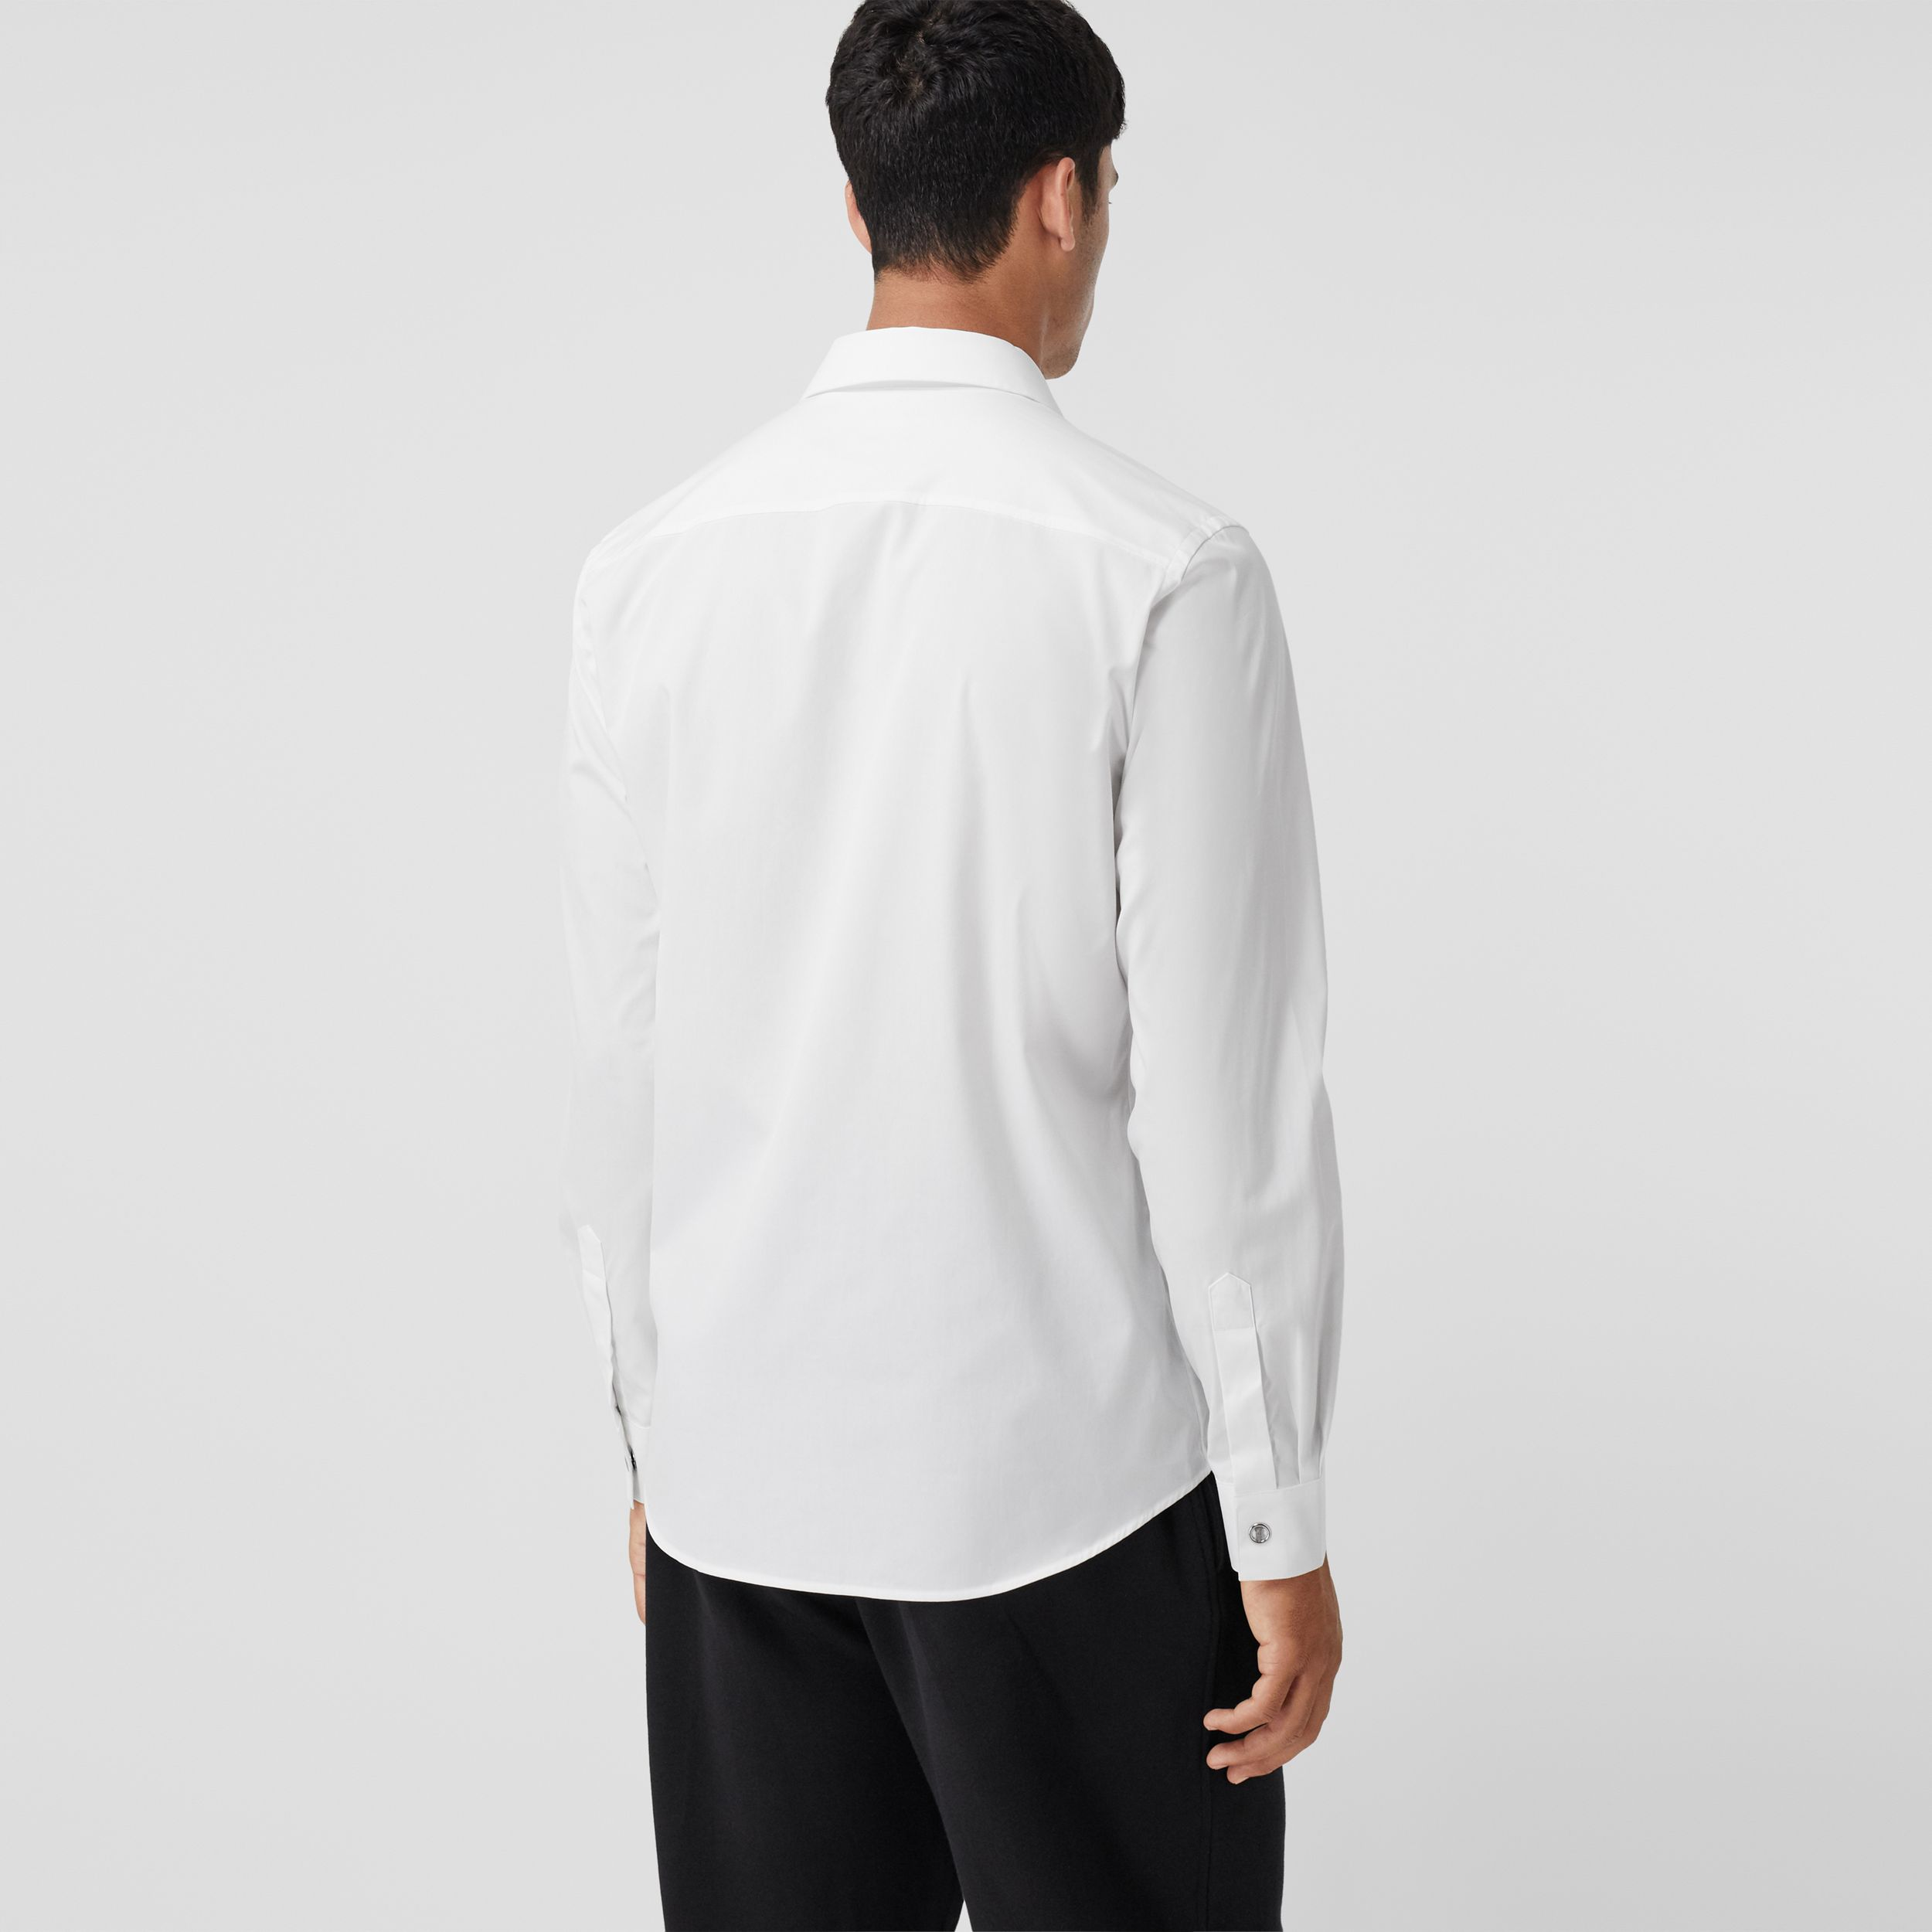 Monogram Motif Stretch Cotton Shirt in White | Burberry - 3